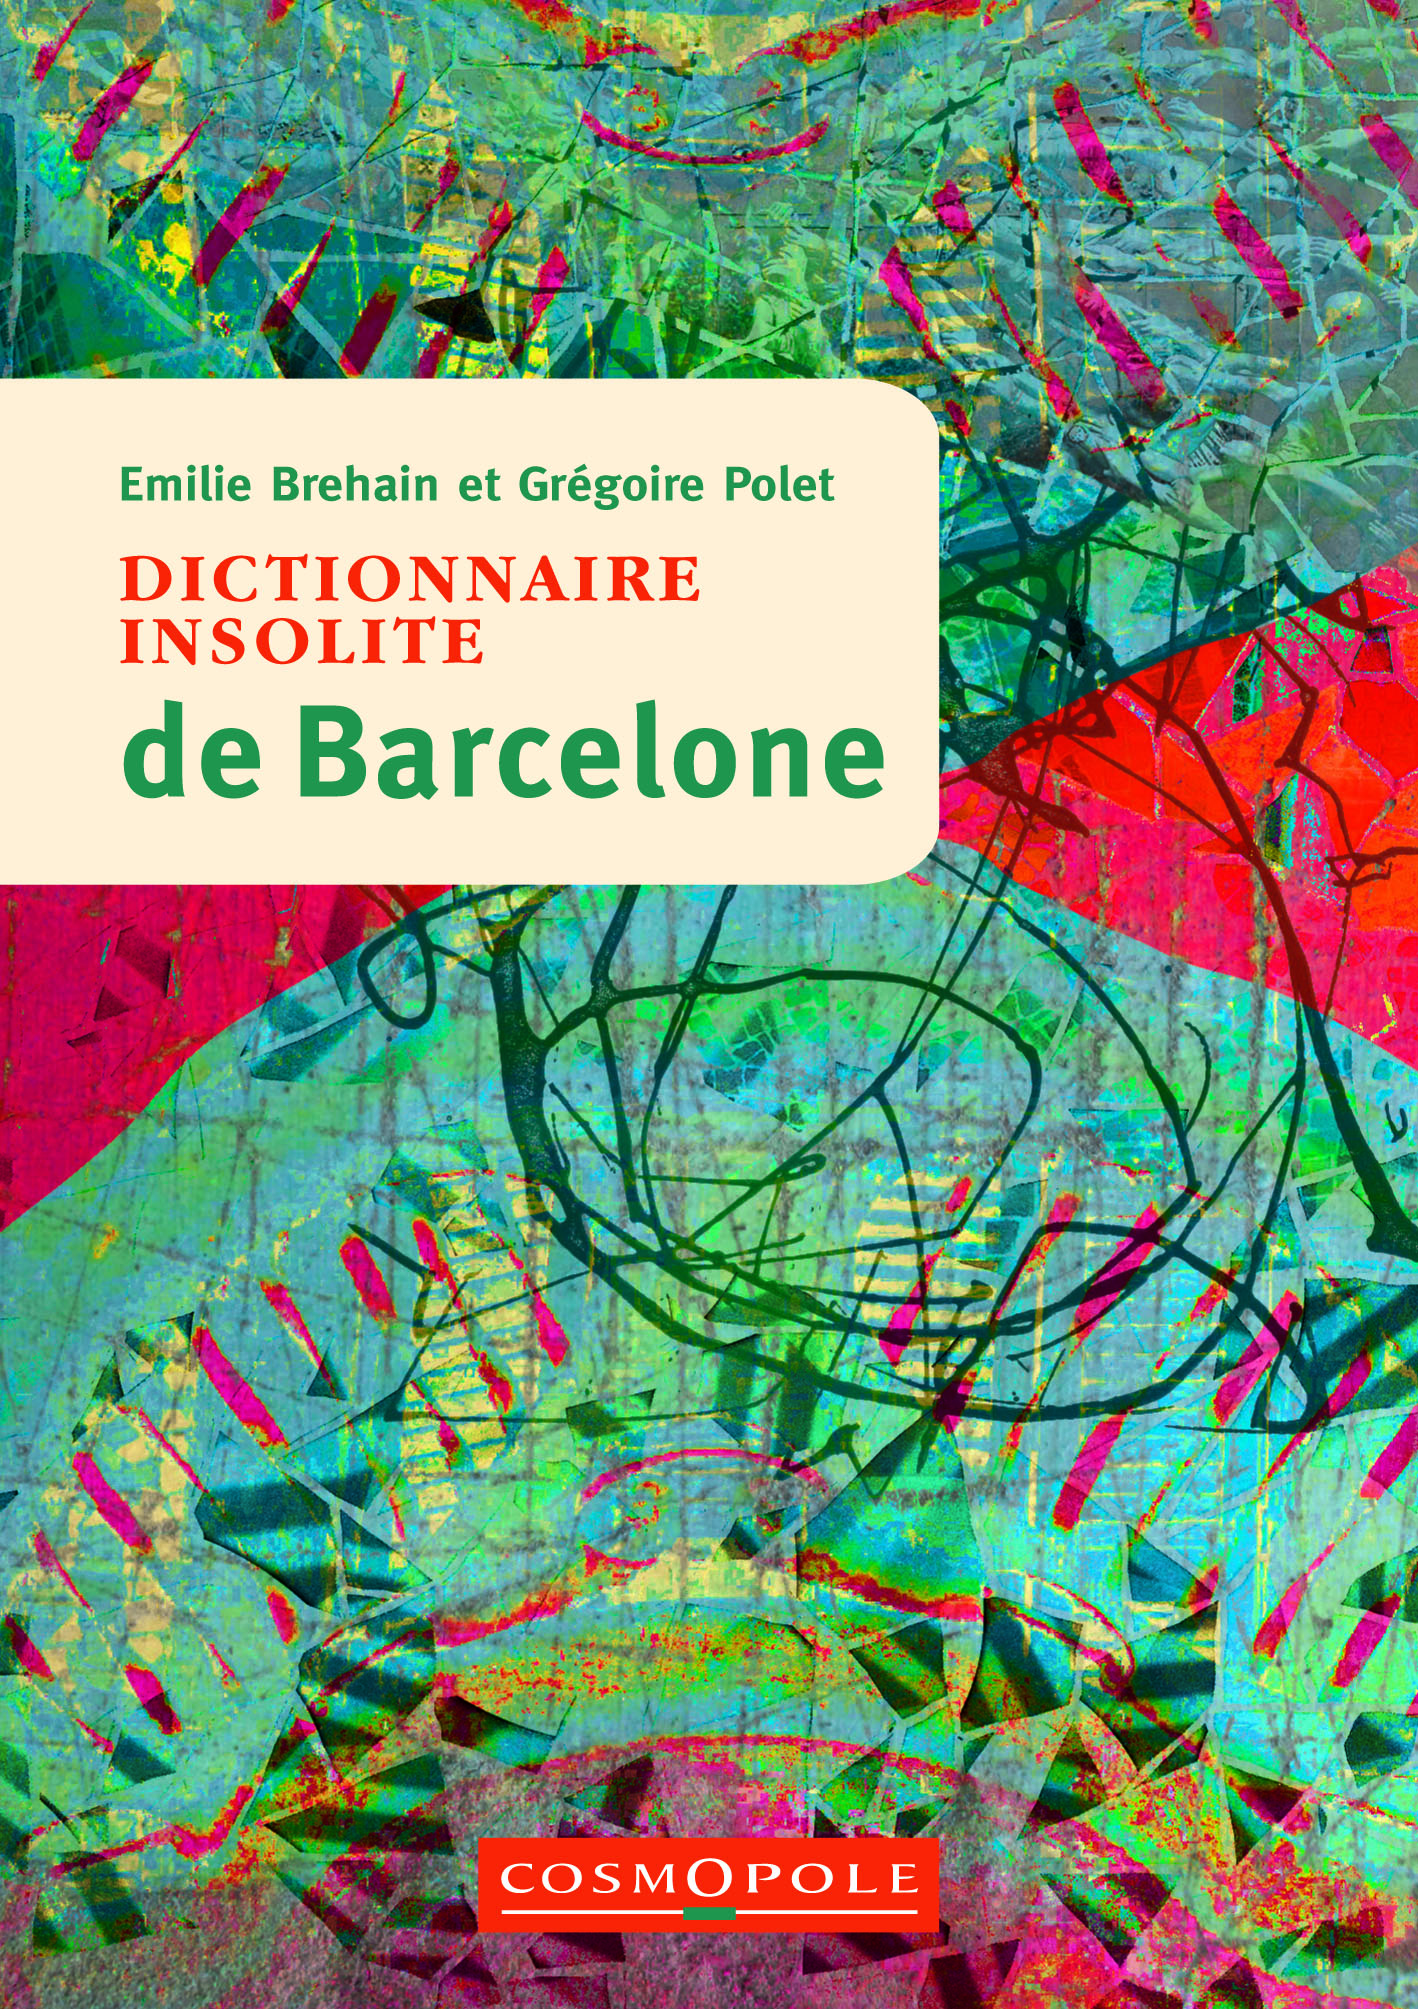 editions-cosmopole-guide-dictionnaire-insolite-barcelone-couverture